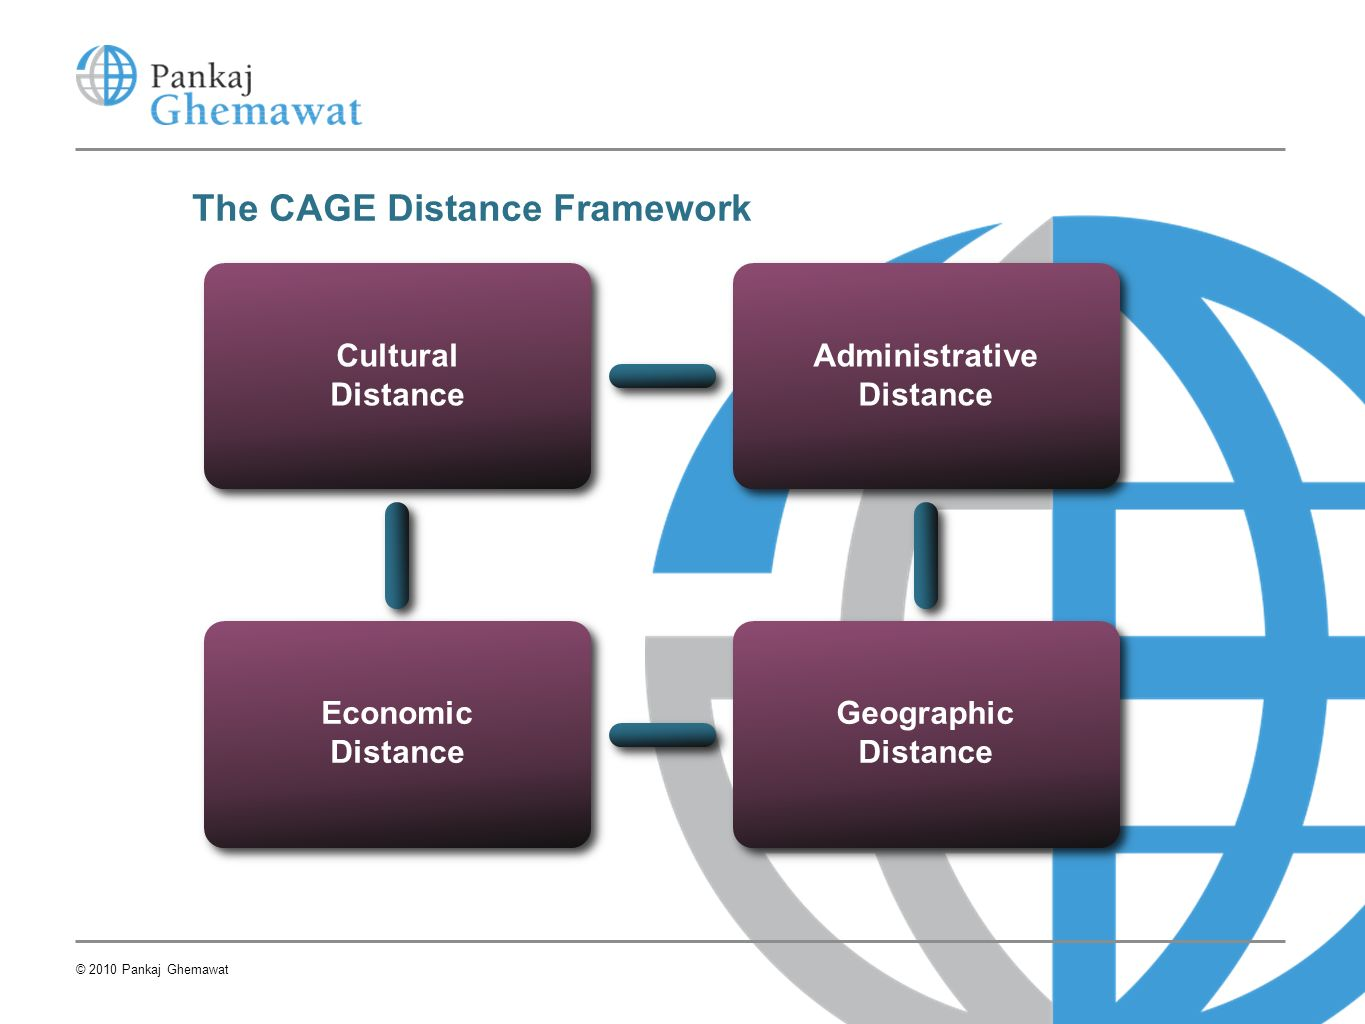 The CAGE Distance Framework